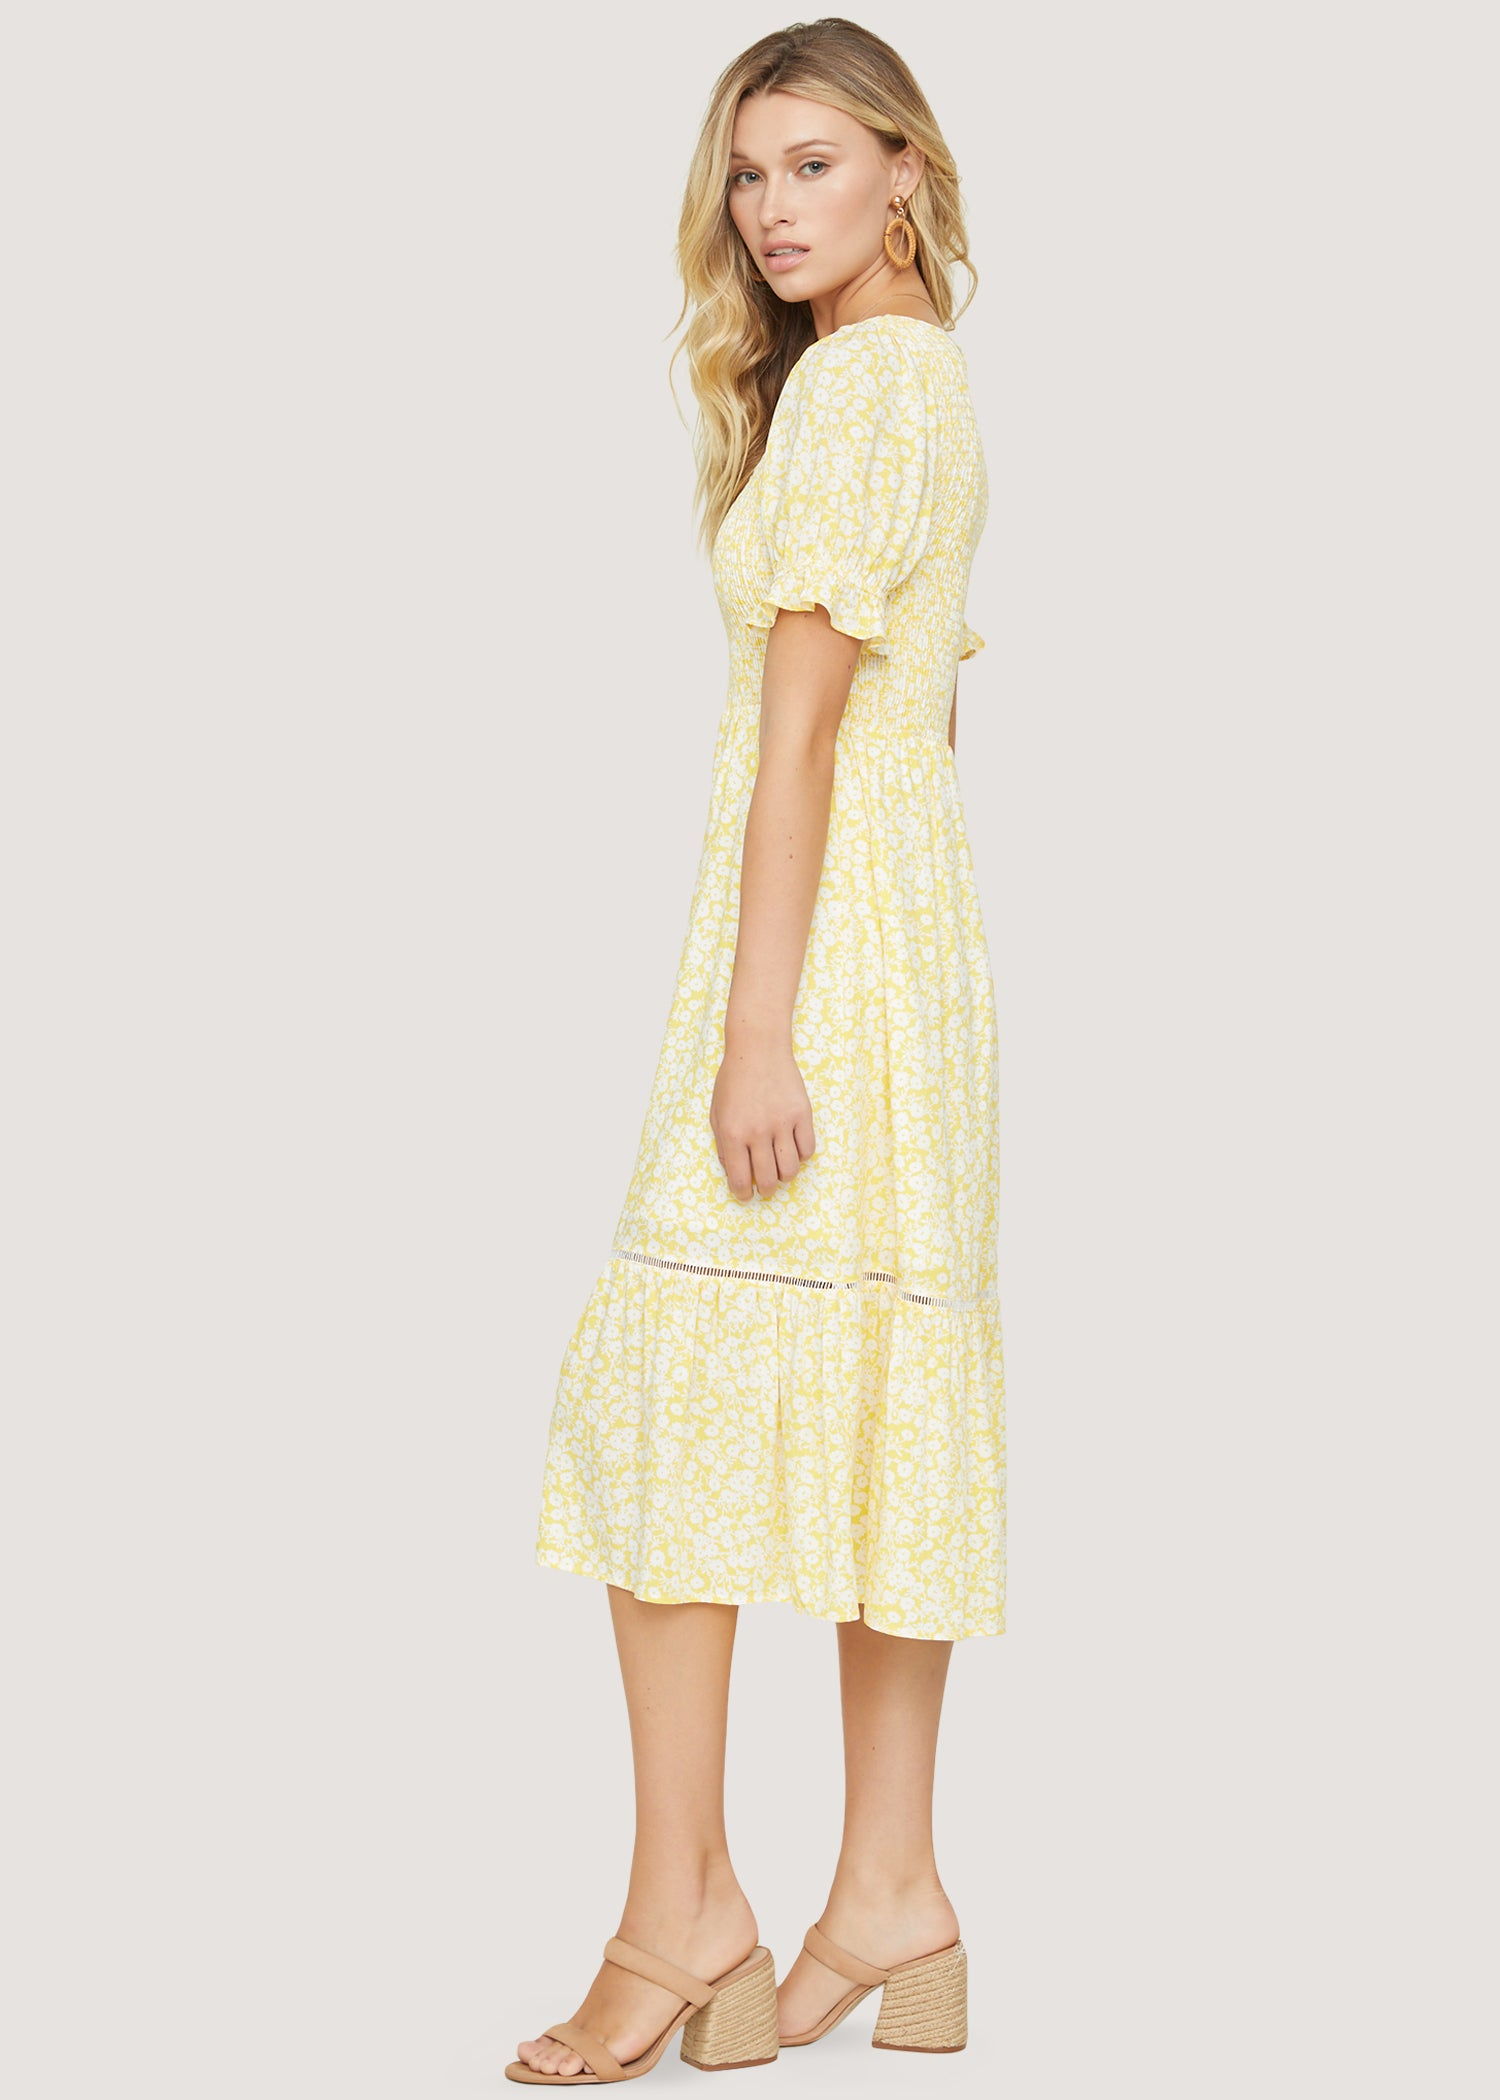 Sweet Summer Daze Midi Dress